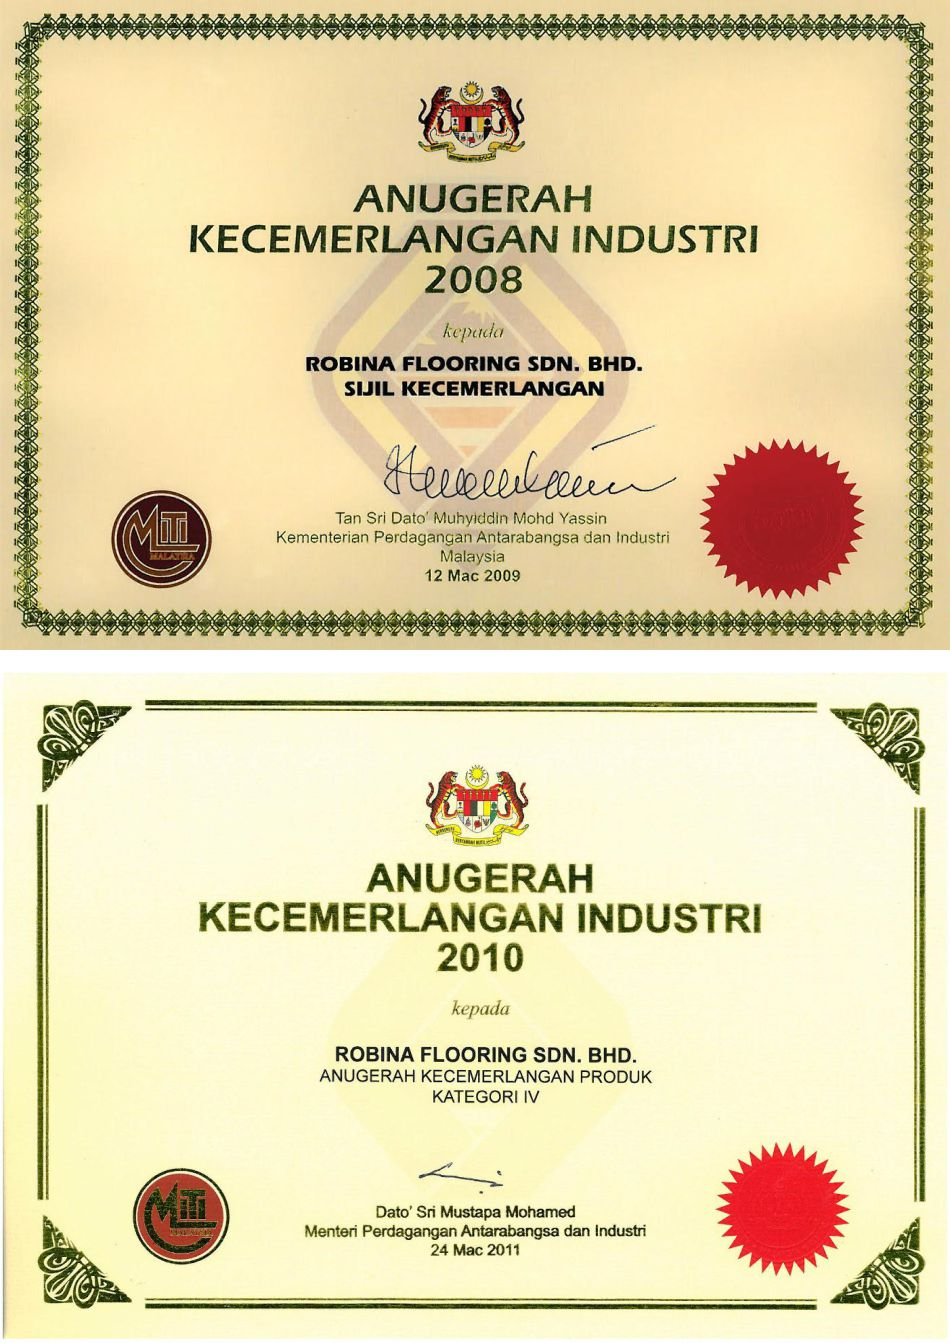 Product Excellence Award WOODMAN Laminated